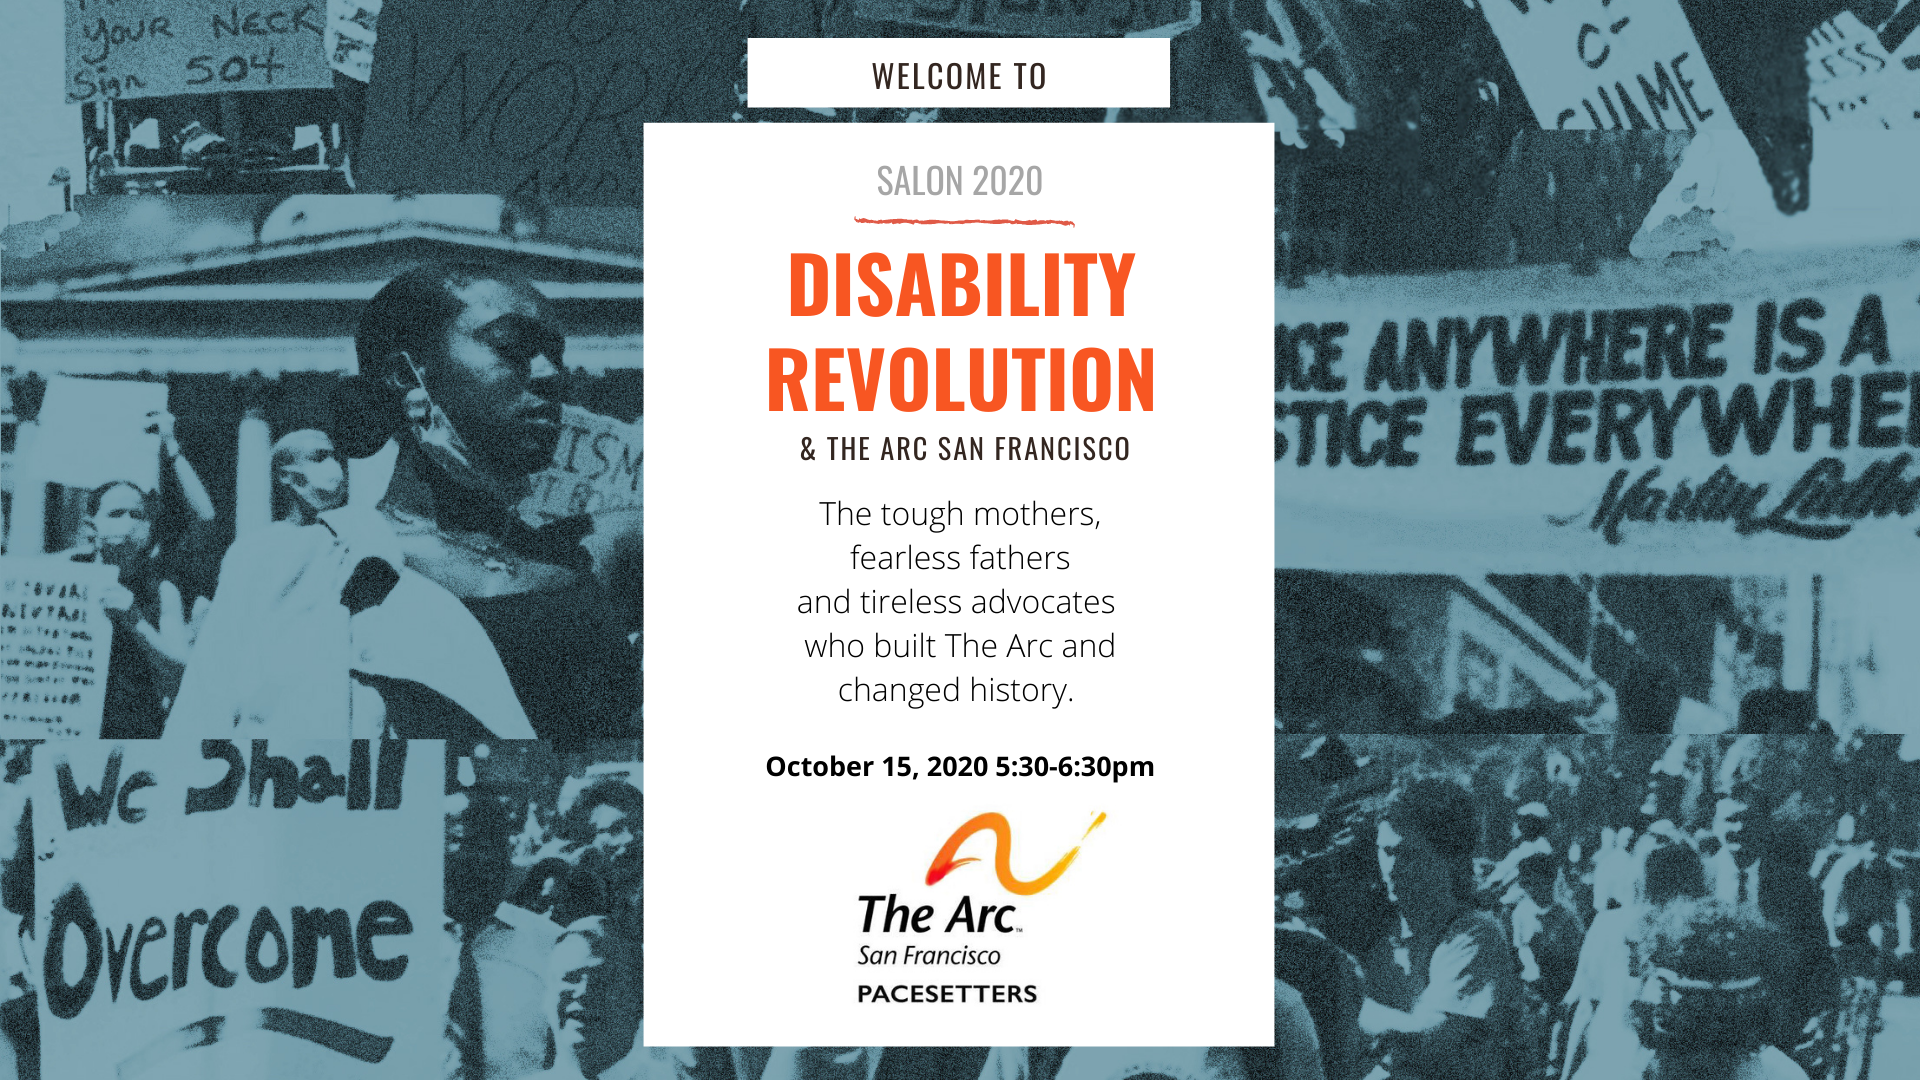 The Disability Revolution & The Arc San Francisco